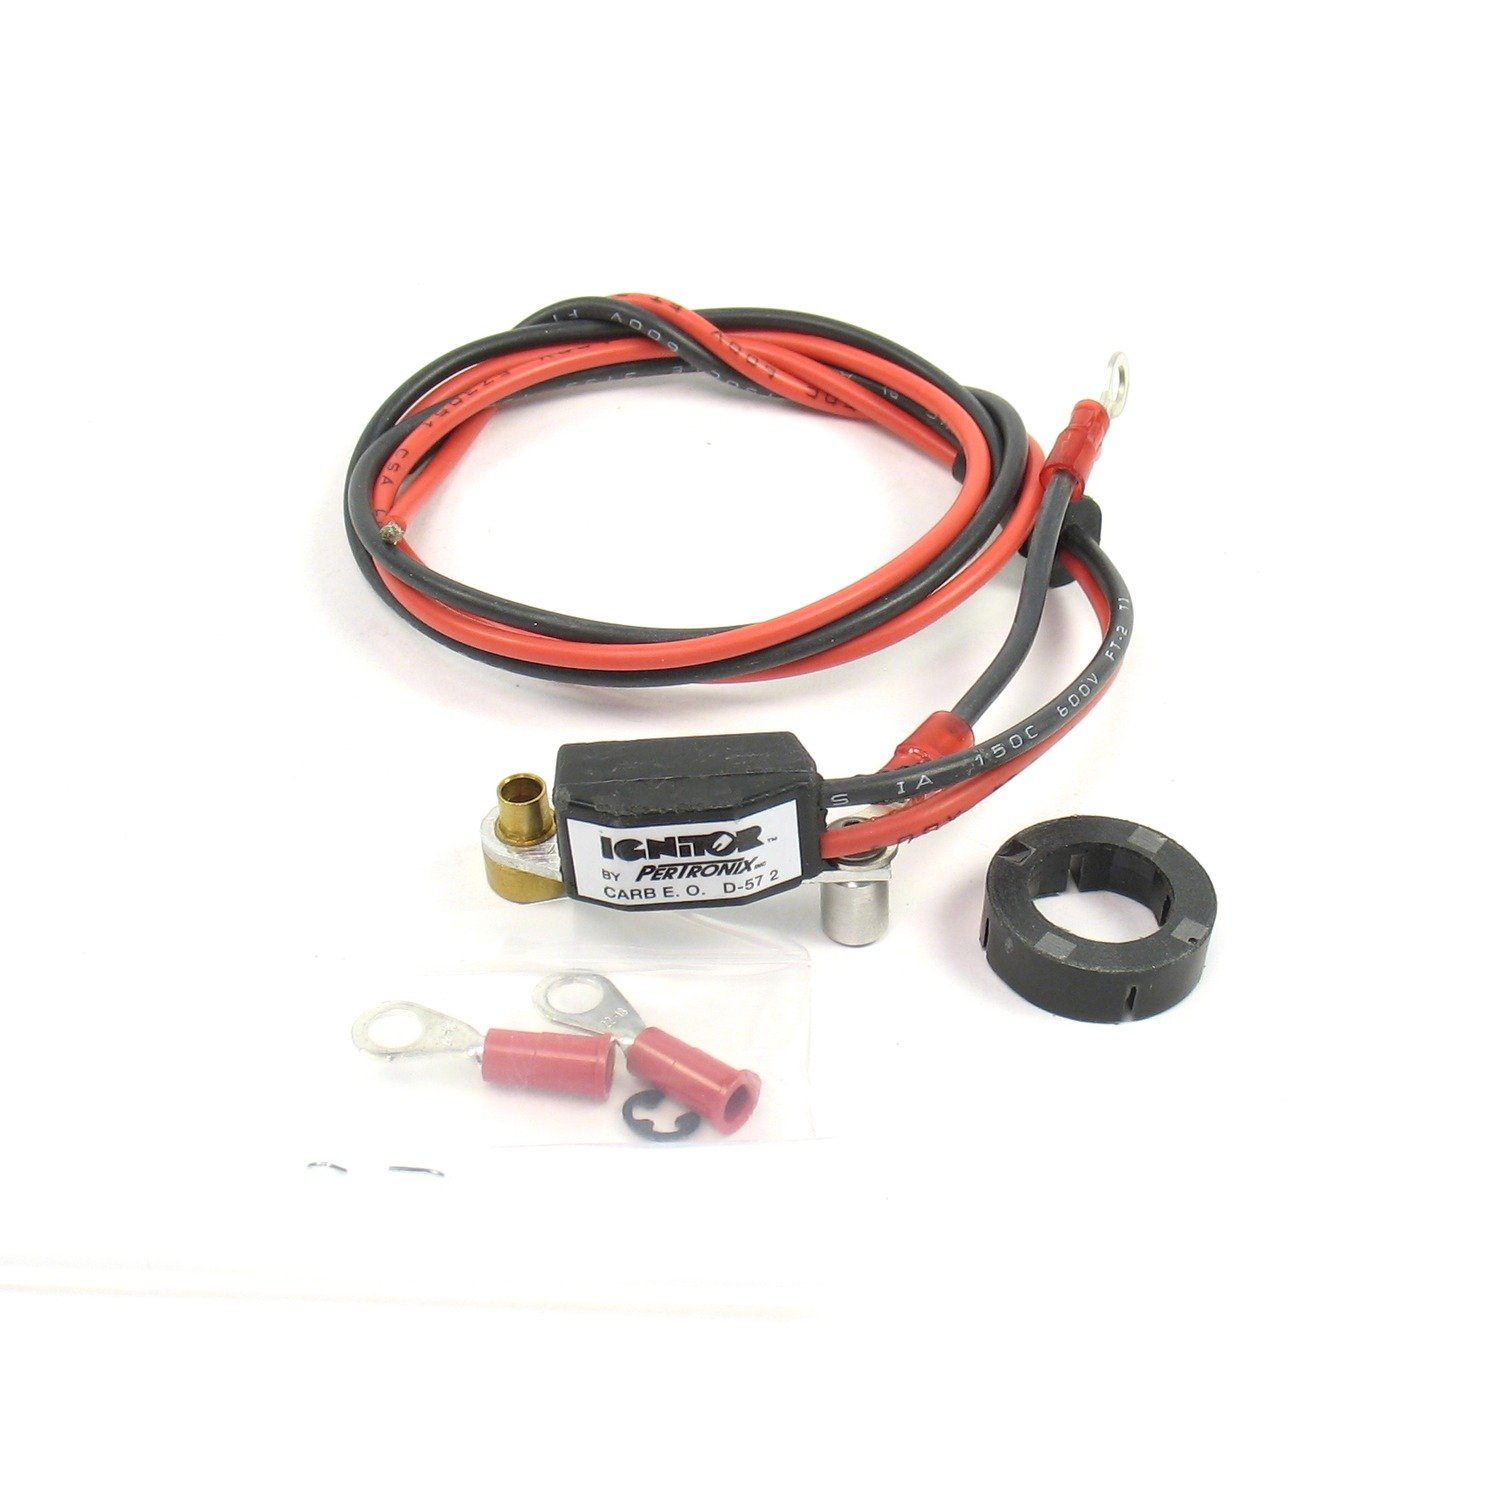 Pertronix EP-141 Ducellier 4 Cylinder Ignitor by Pertronix